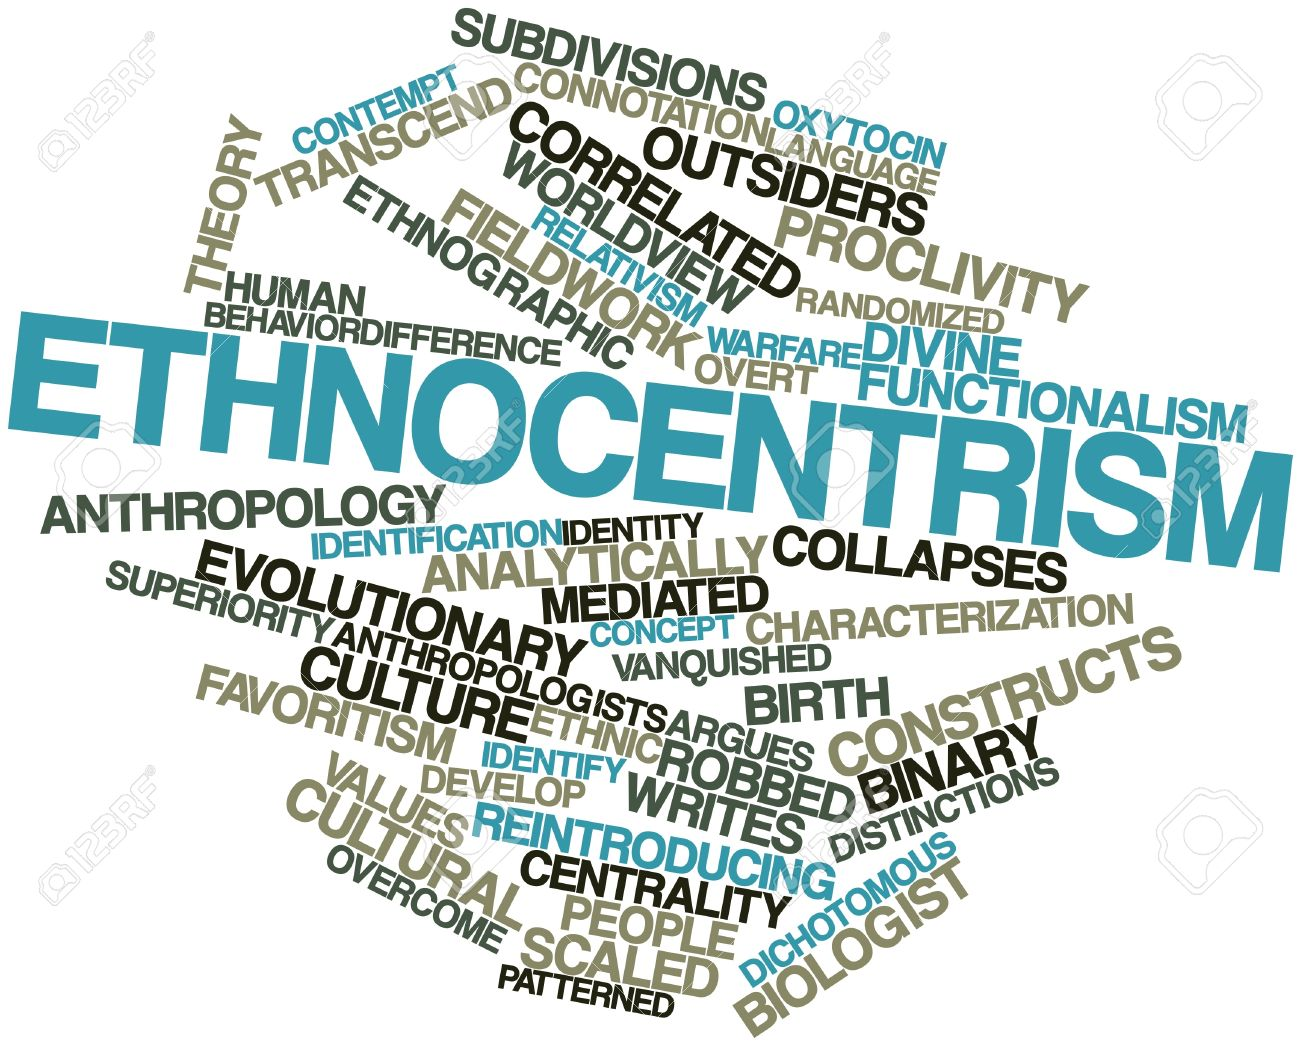 2 What Is Ethnocentrism In What Ways Can Ethnocentrism Be